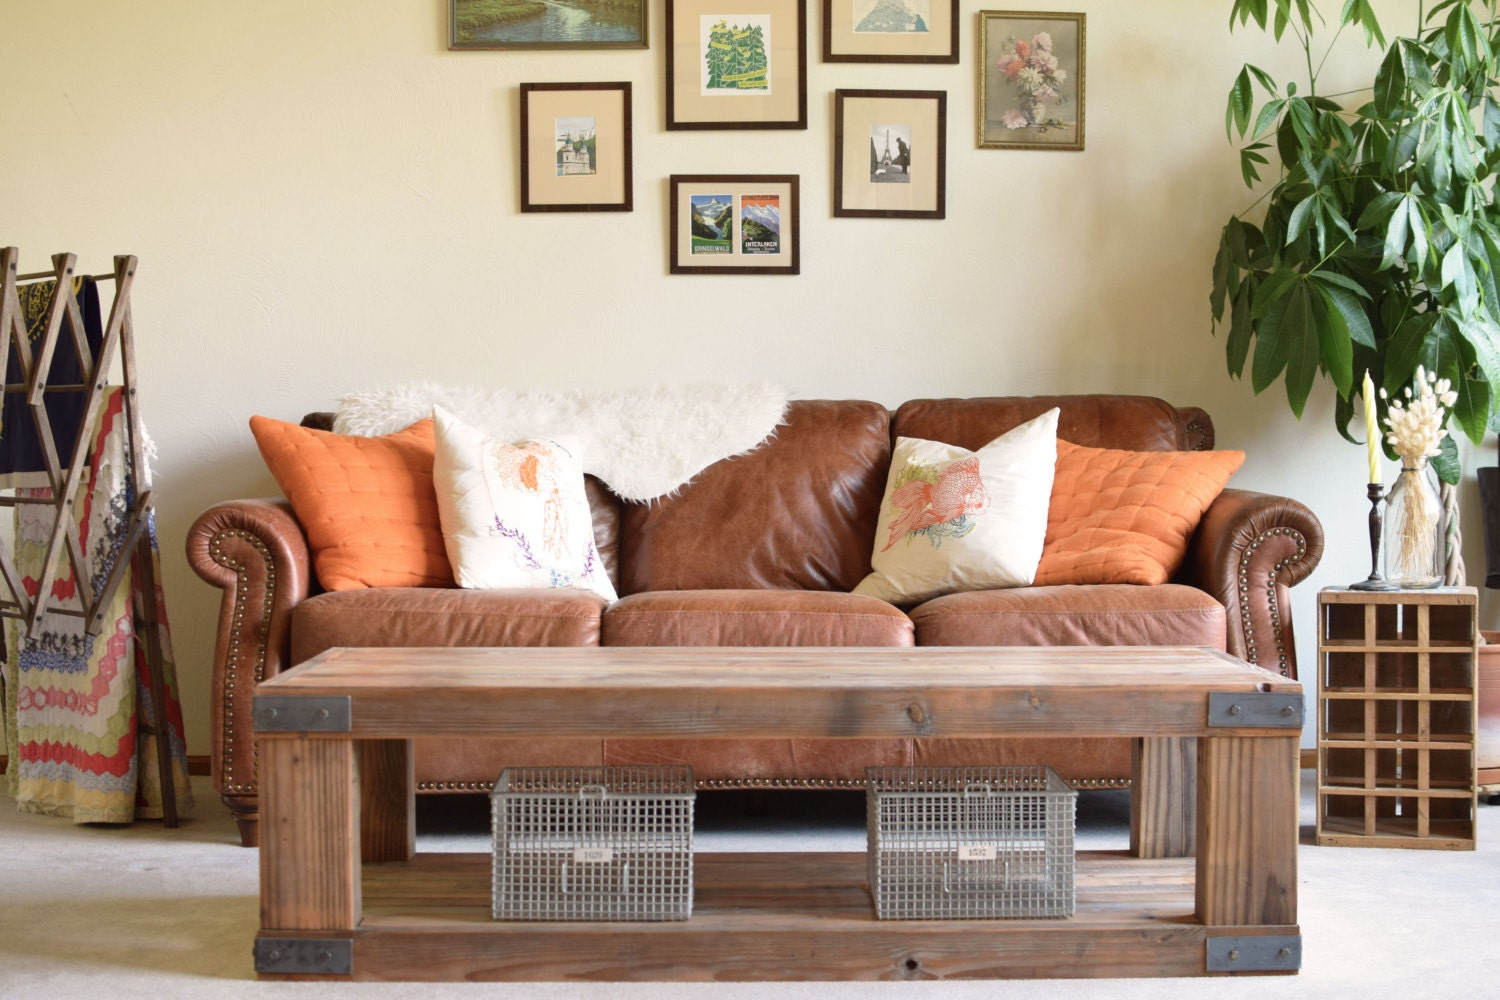 Reclaimed Wood Coffee Table Fir Furniture Living Room